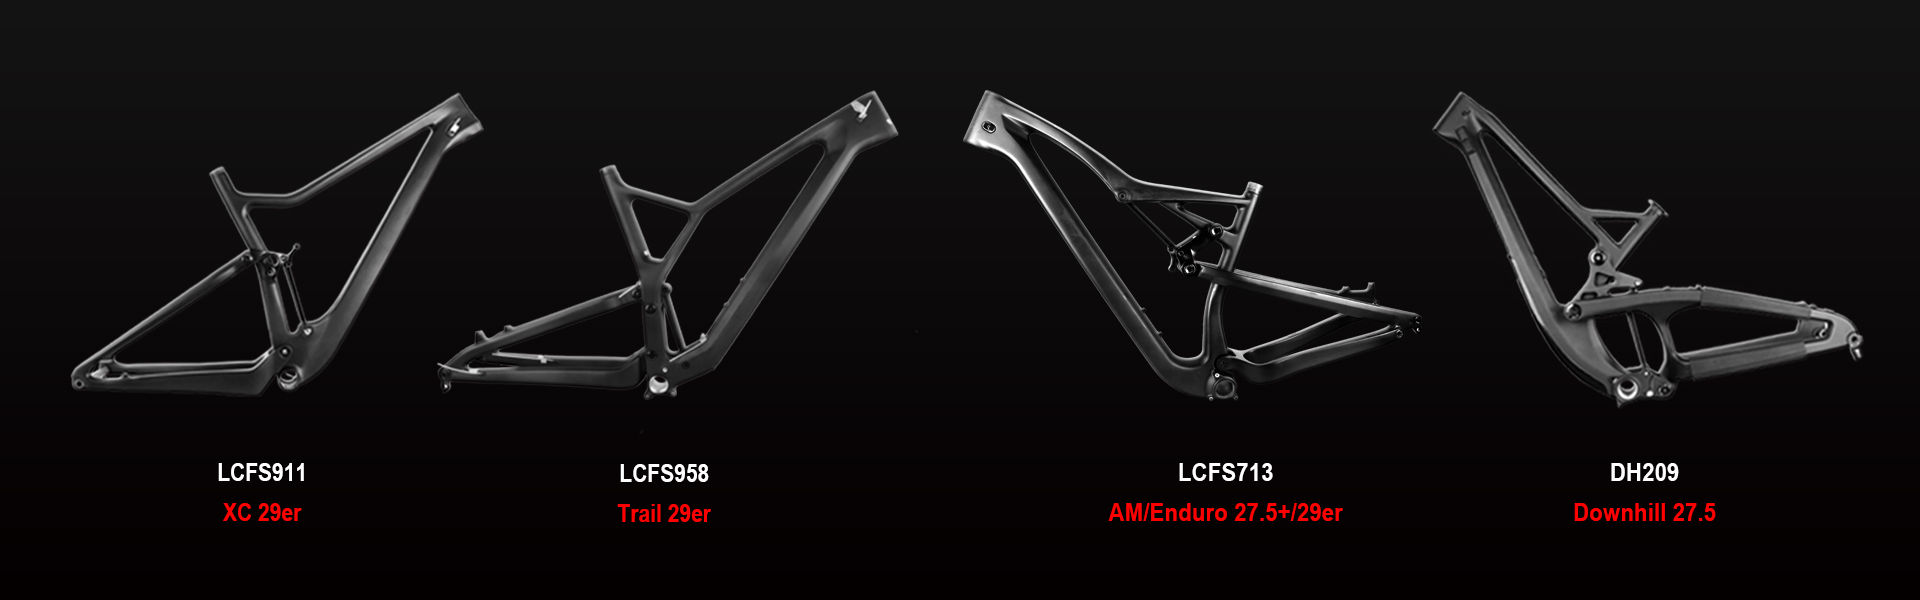 All mountain bike frame you need